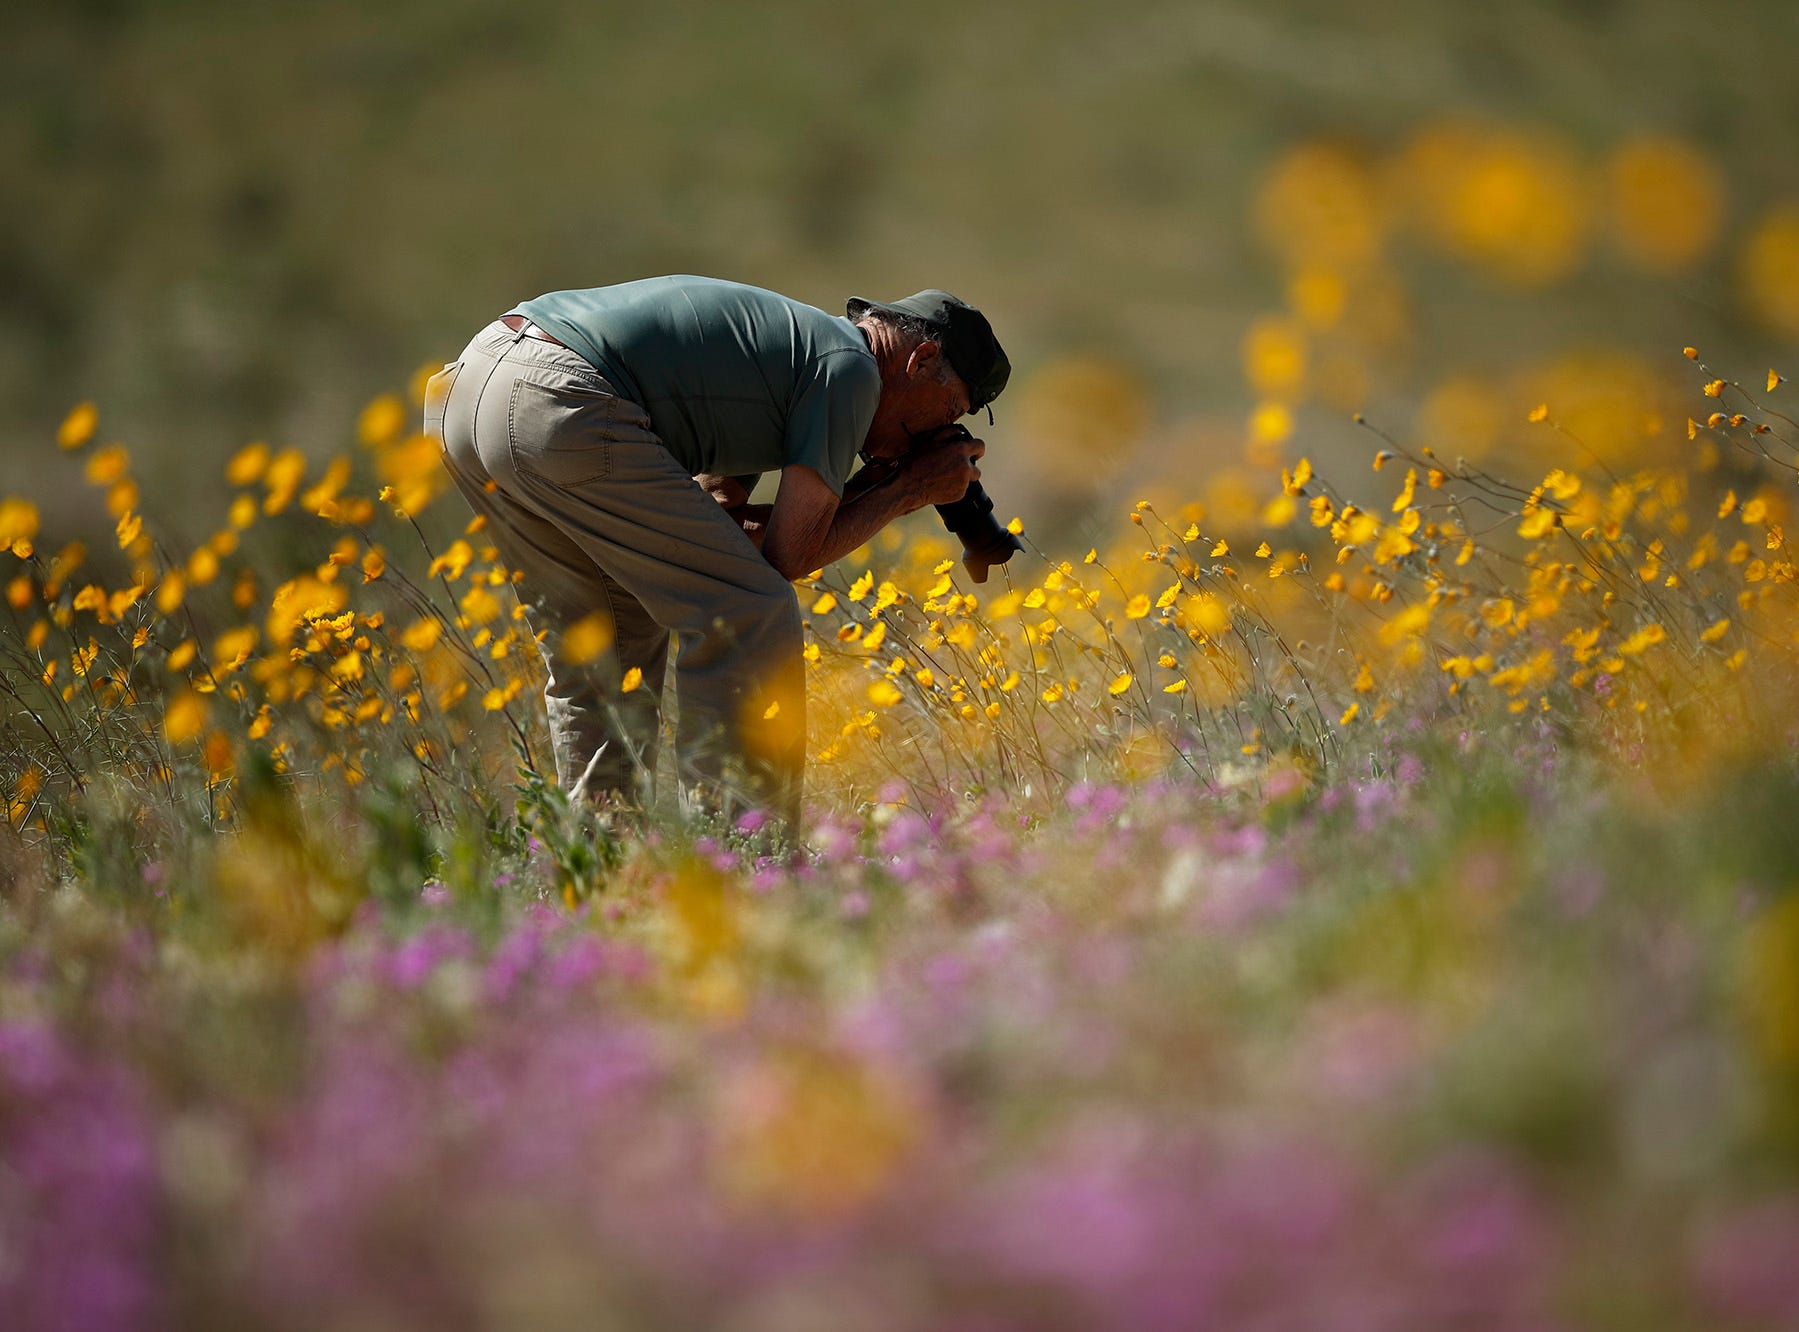 A man takes pictures of wildflowers in bloom near Borrego Springs, Calif. March 6, 2019.